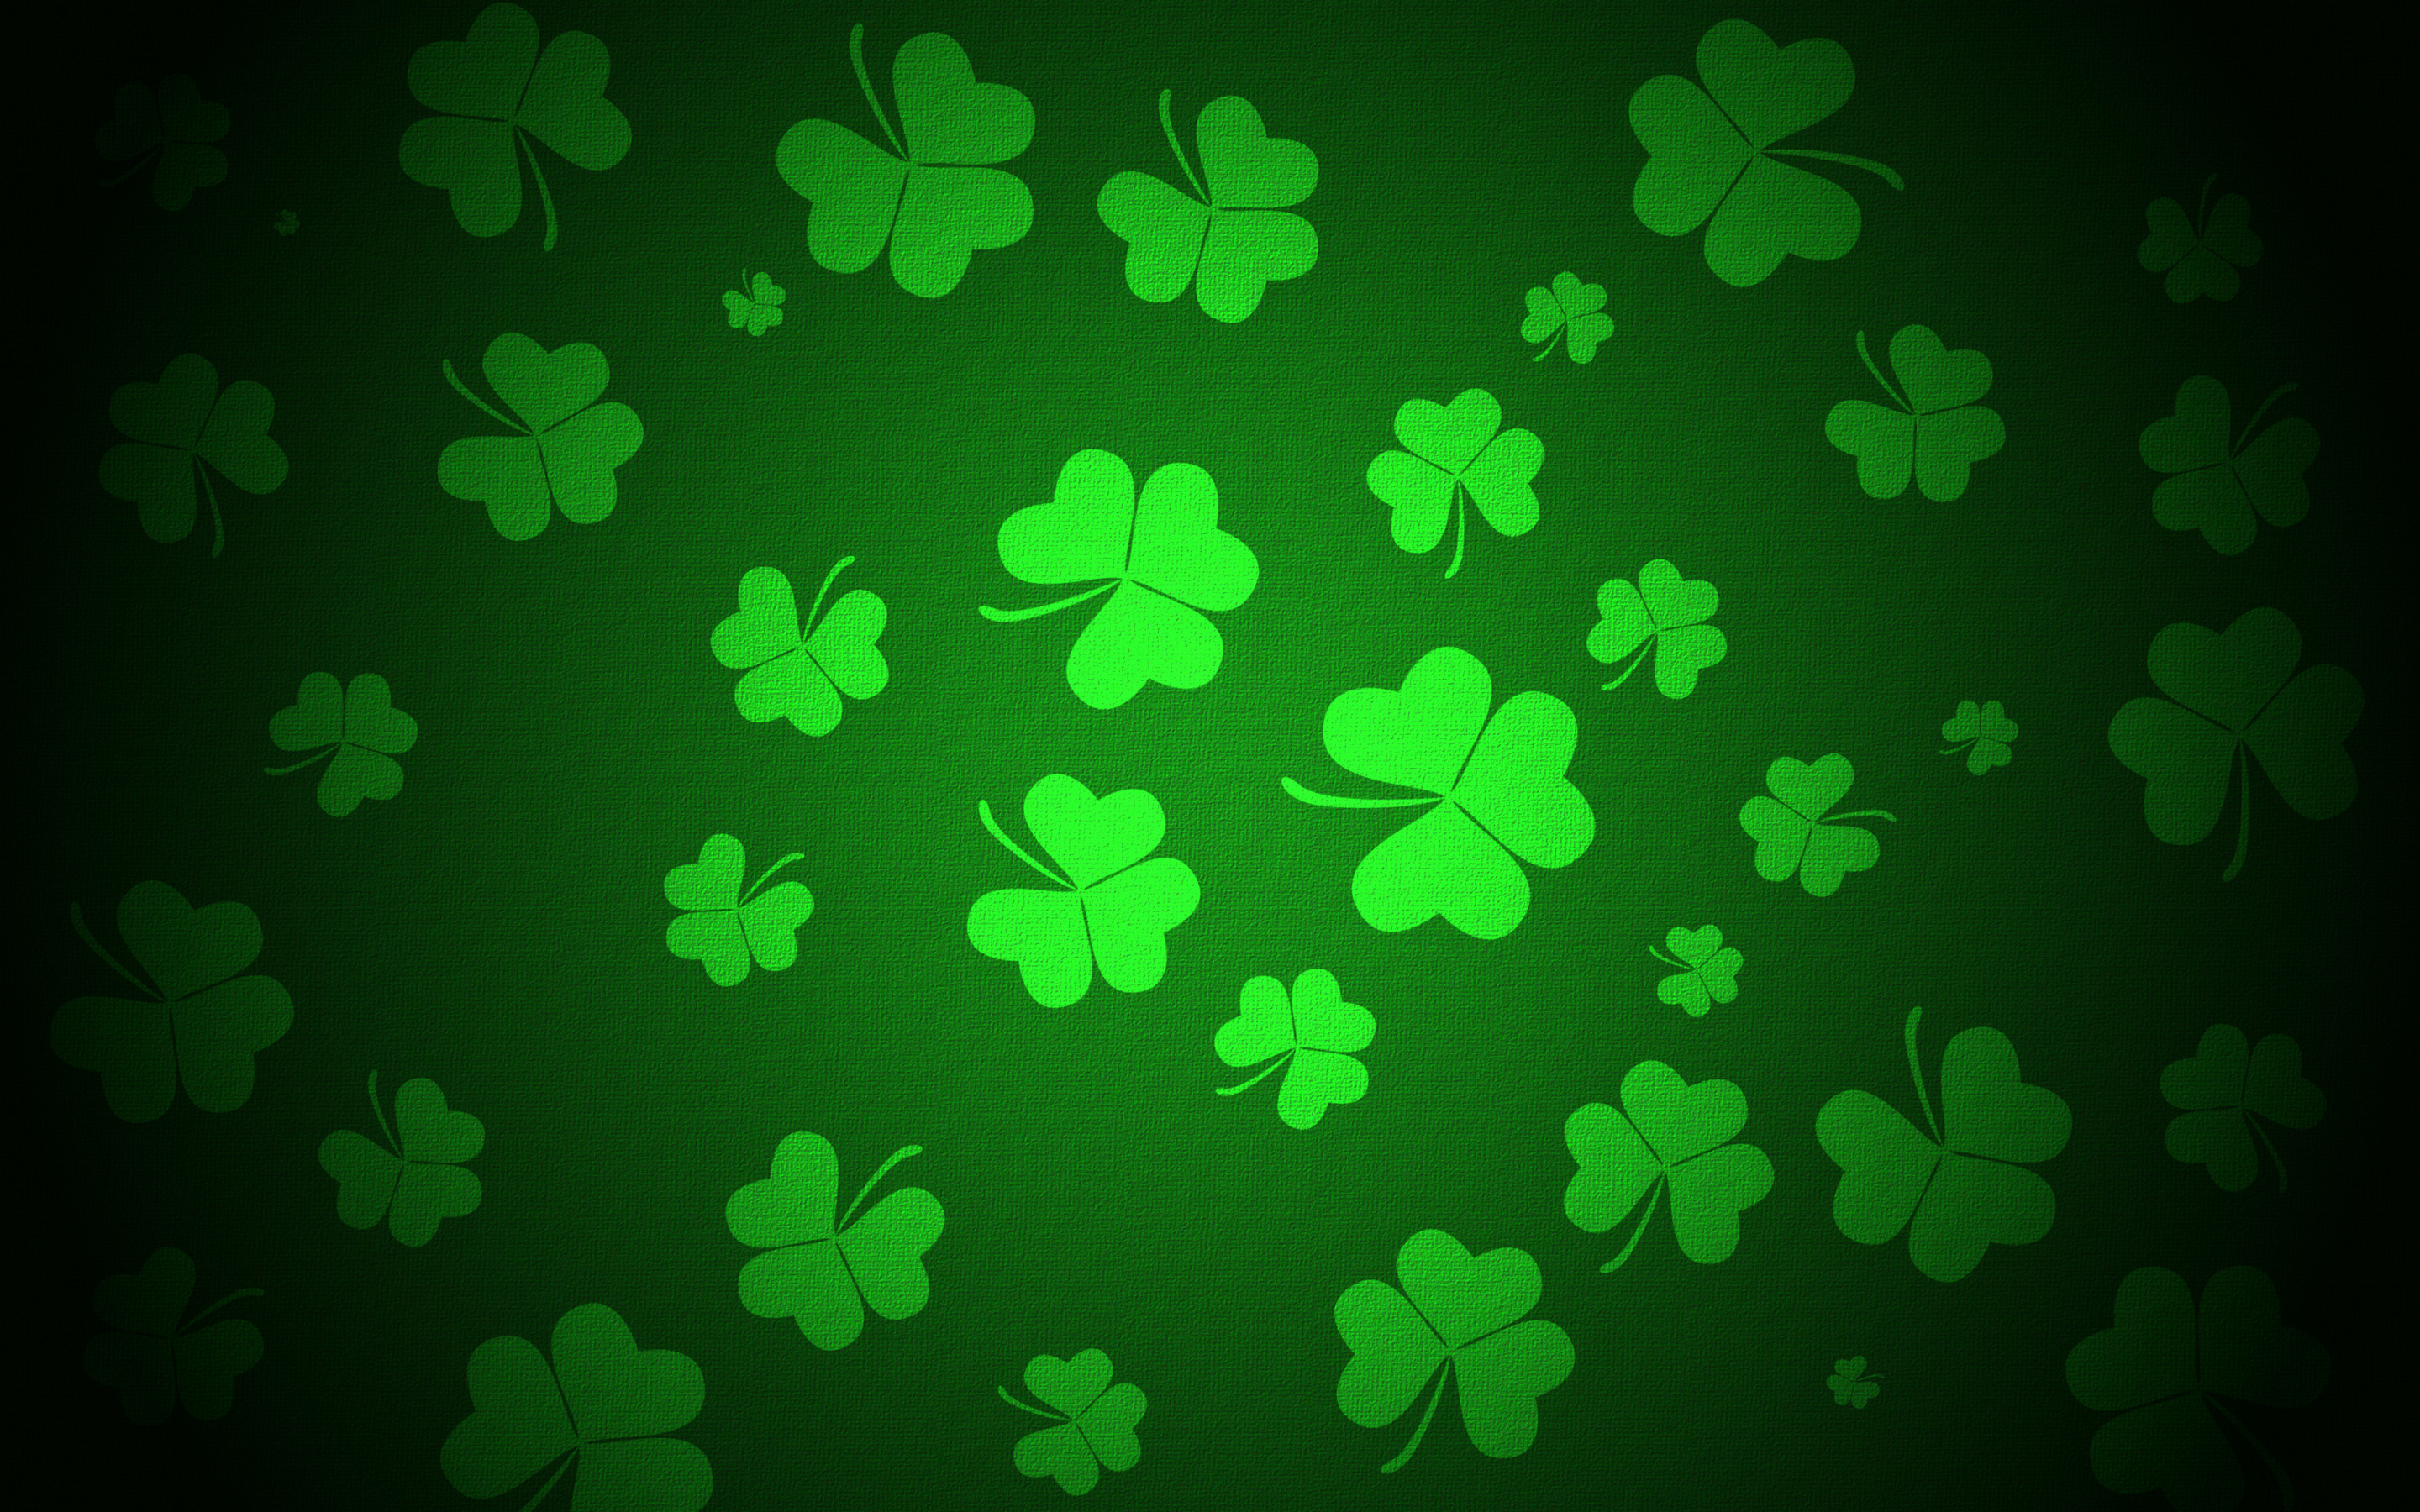 Gallery For gt St Patricks Day Backgrounds 2880x1800